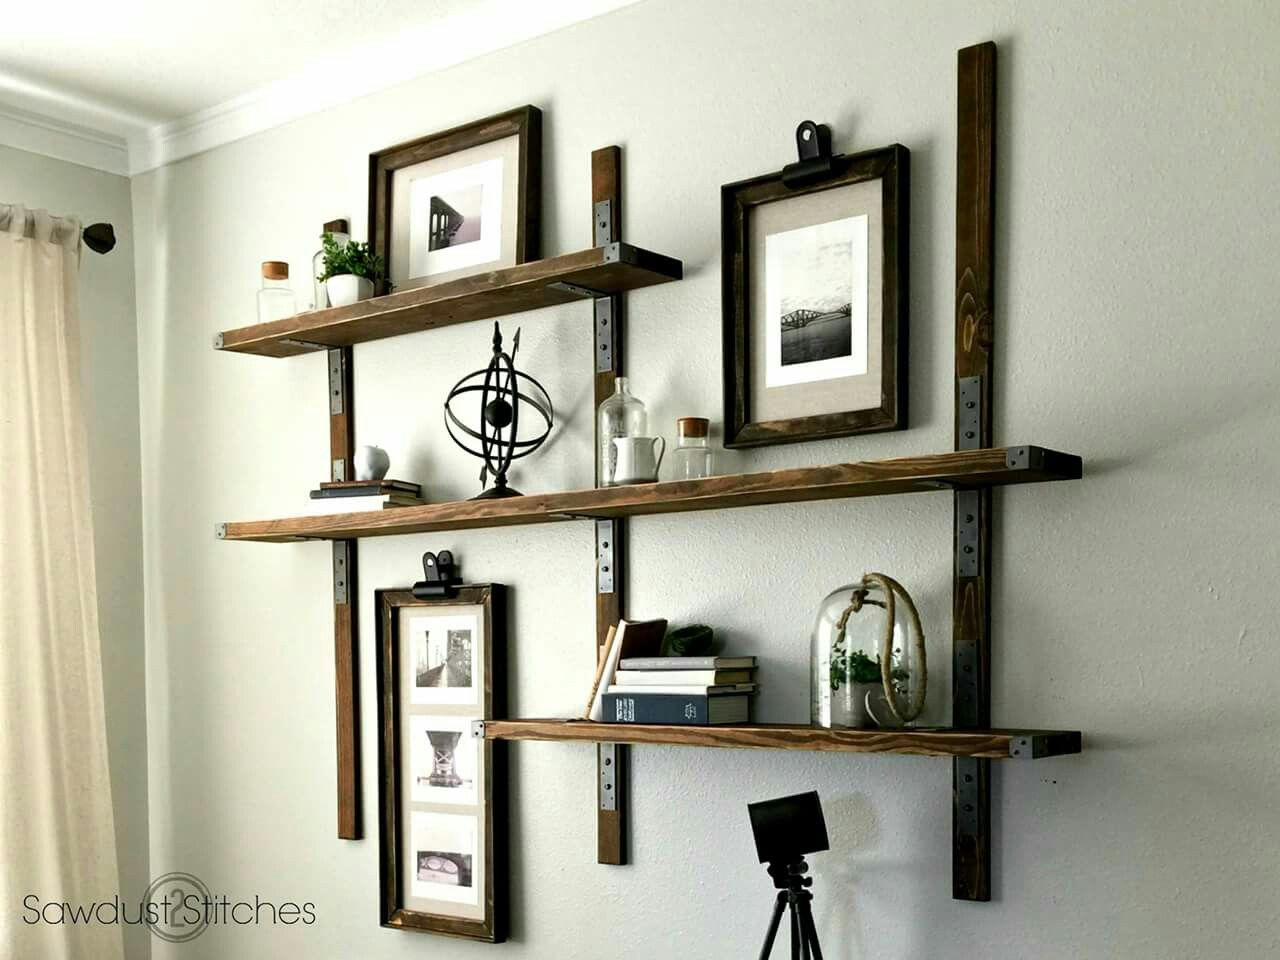 cool diy industrial shelves diy pinterest shelving wall rh pinterest co uk Wall Mounted Kitchen Shelf Industrial Metal Wall Mounted Shelving